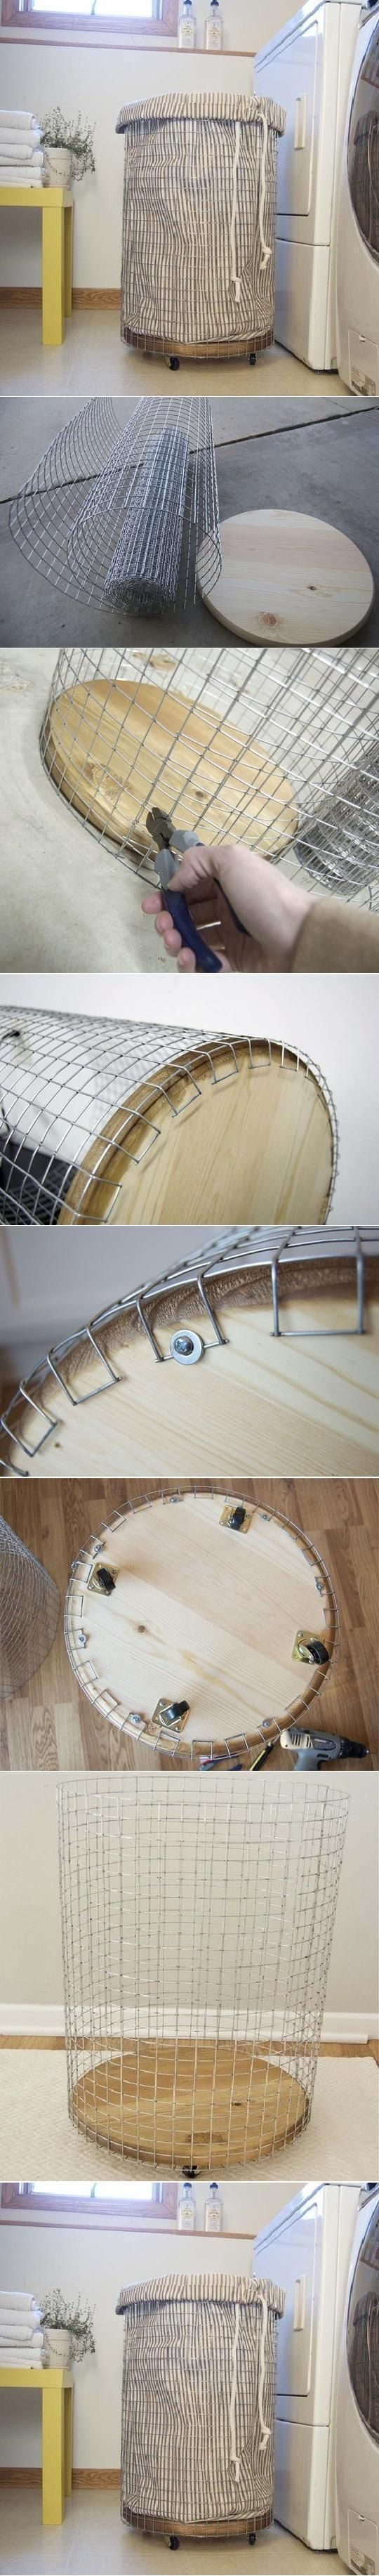 DIY Easy Laundry Basket, maybe spray paint white before addling castors...